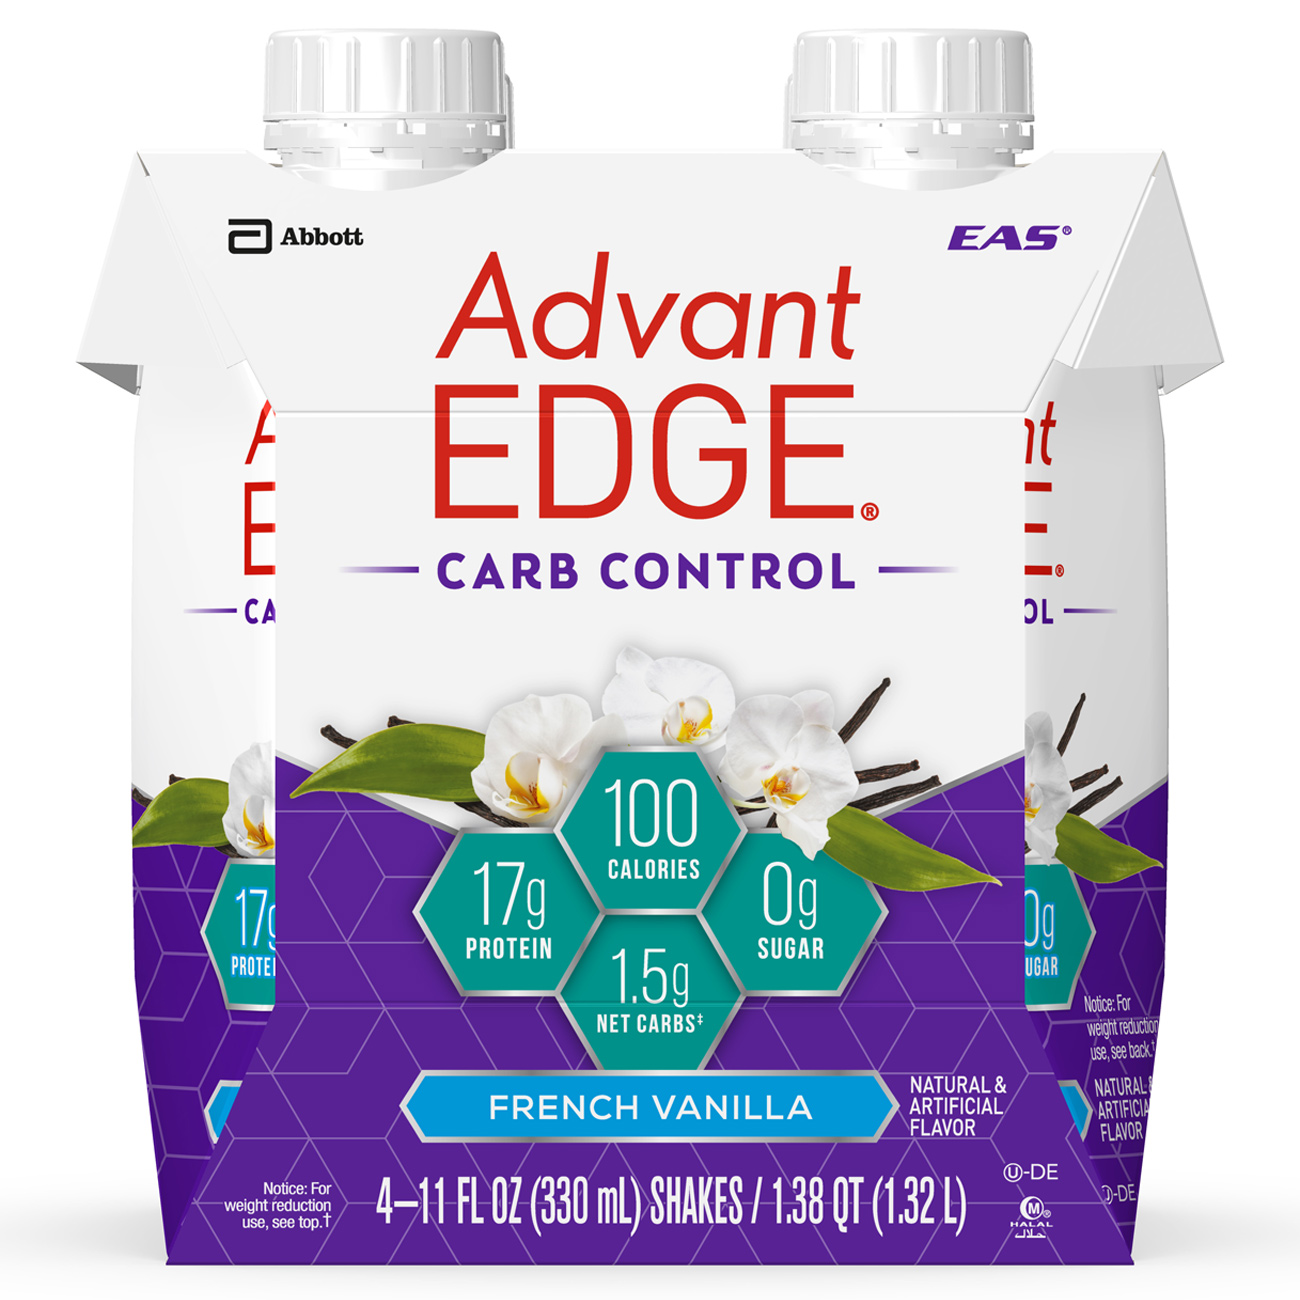 EAS AdvantEDGE Carb Control Protein Shake, French Vanilla, 17g Protein, 4 Ct